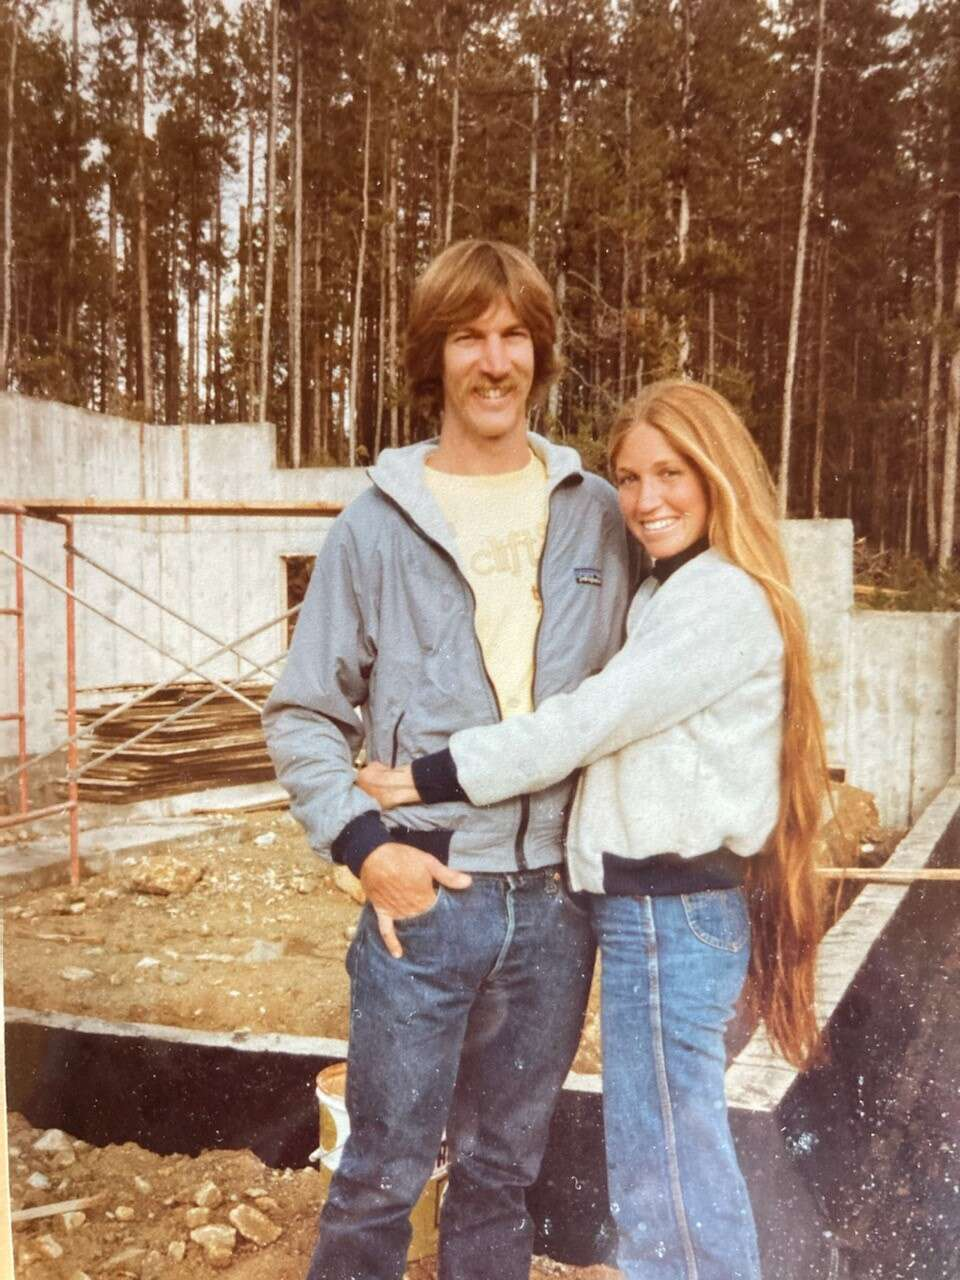 David Jefferson, left, and Sharon are pictured in 1983. The couple married that year after meeting in 1981. | Photo from Lauren Jefferson